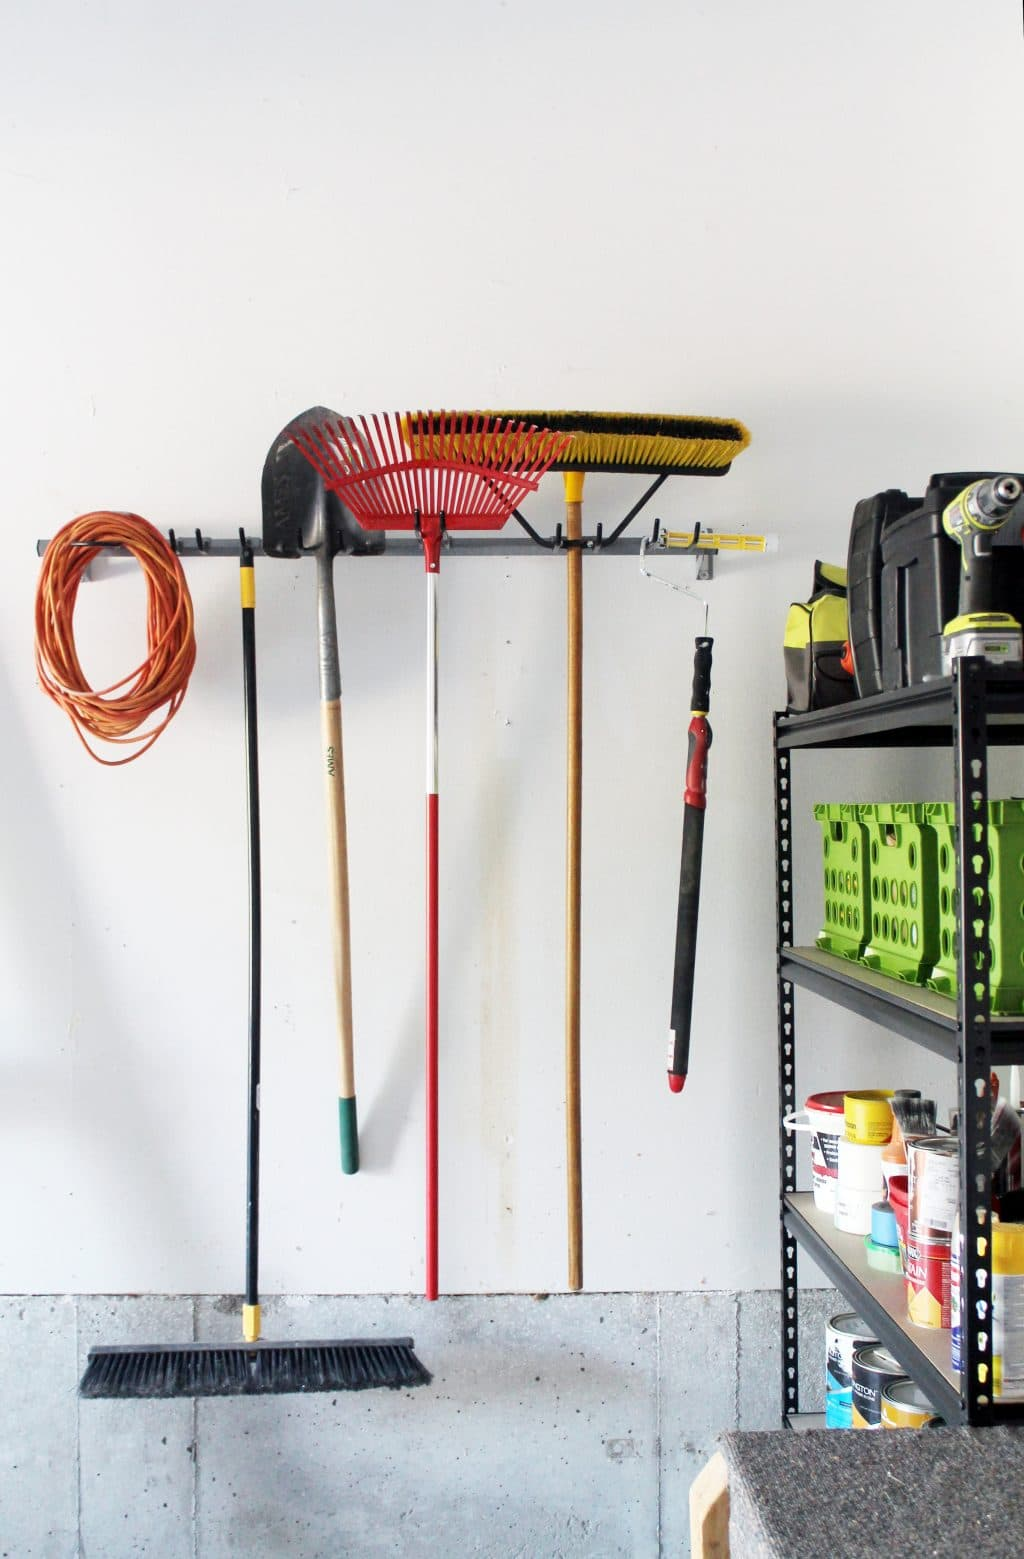 Our garden tool storage creative diy ideas chris for Home and garden equipment